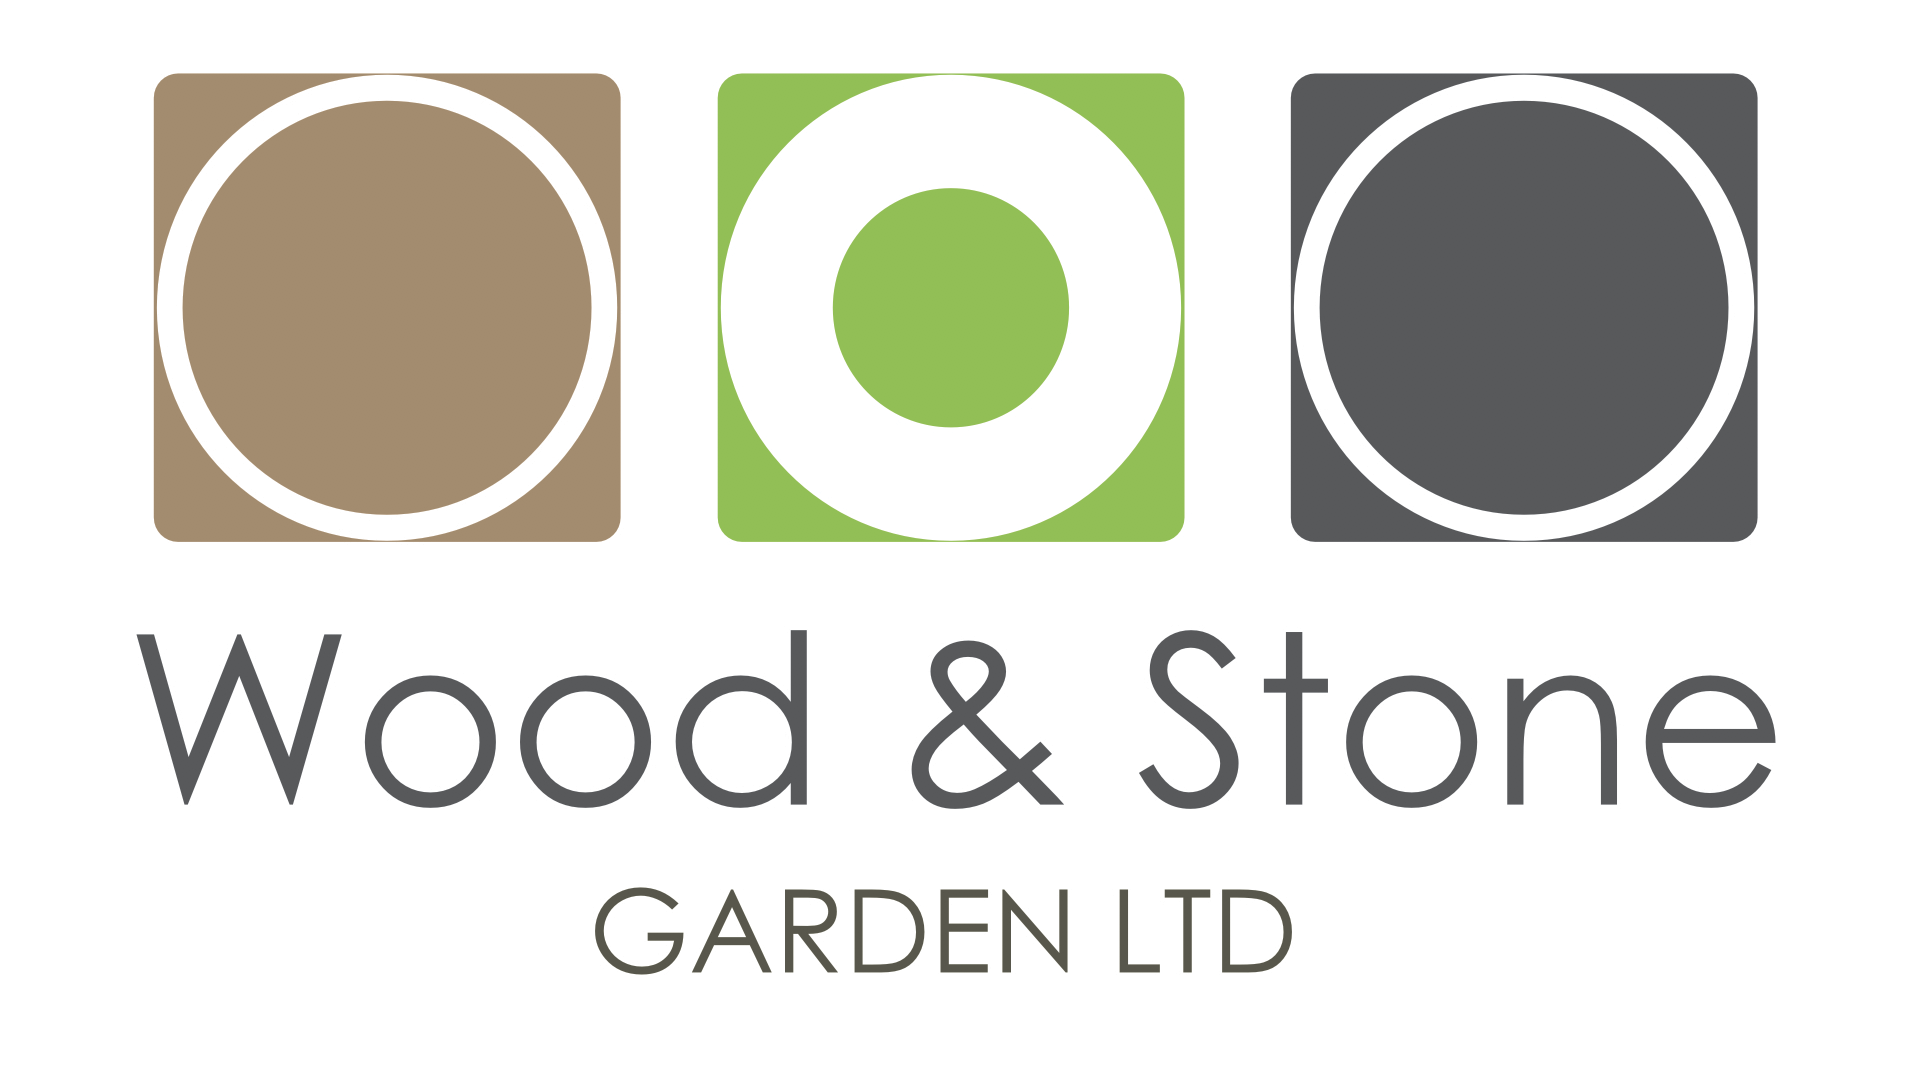 Wood and Stone Garden Ltd